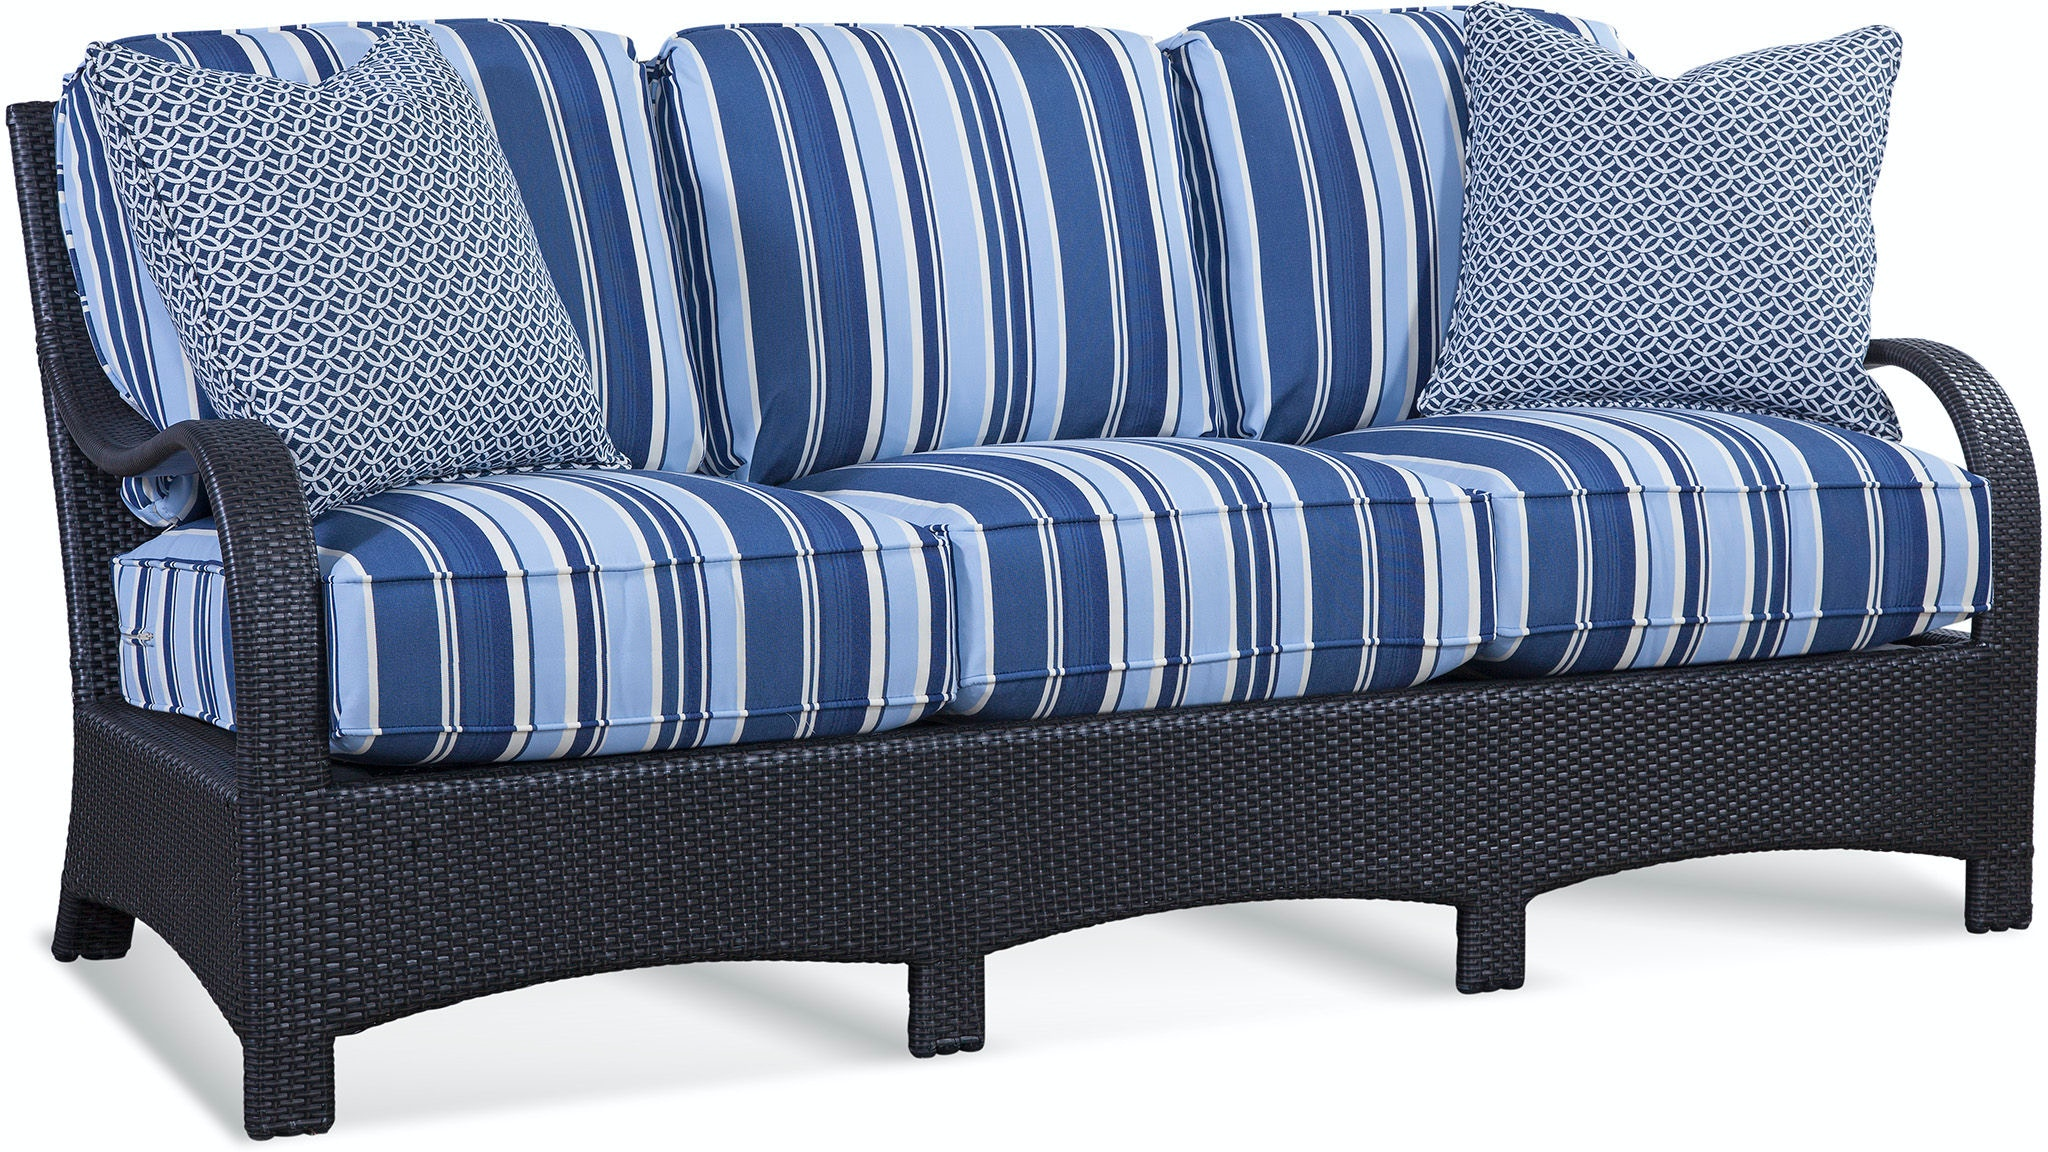 Brighton Pointe Sofa 435-011